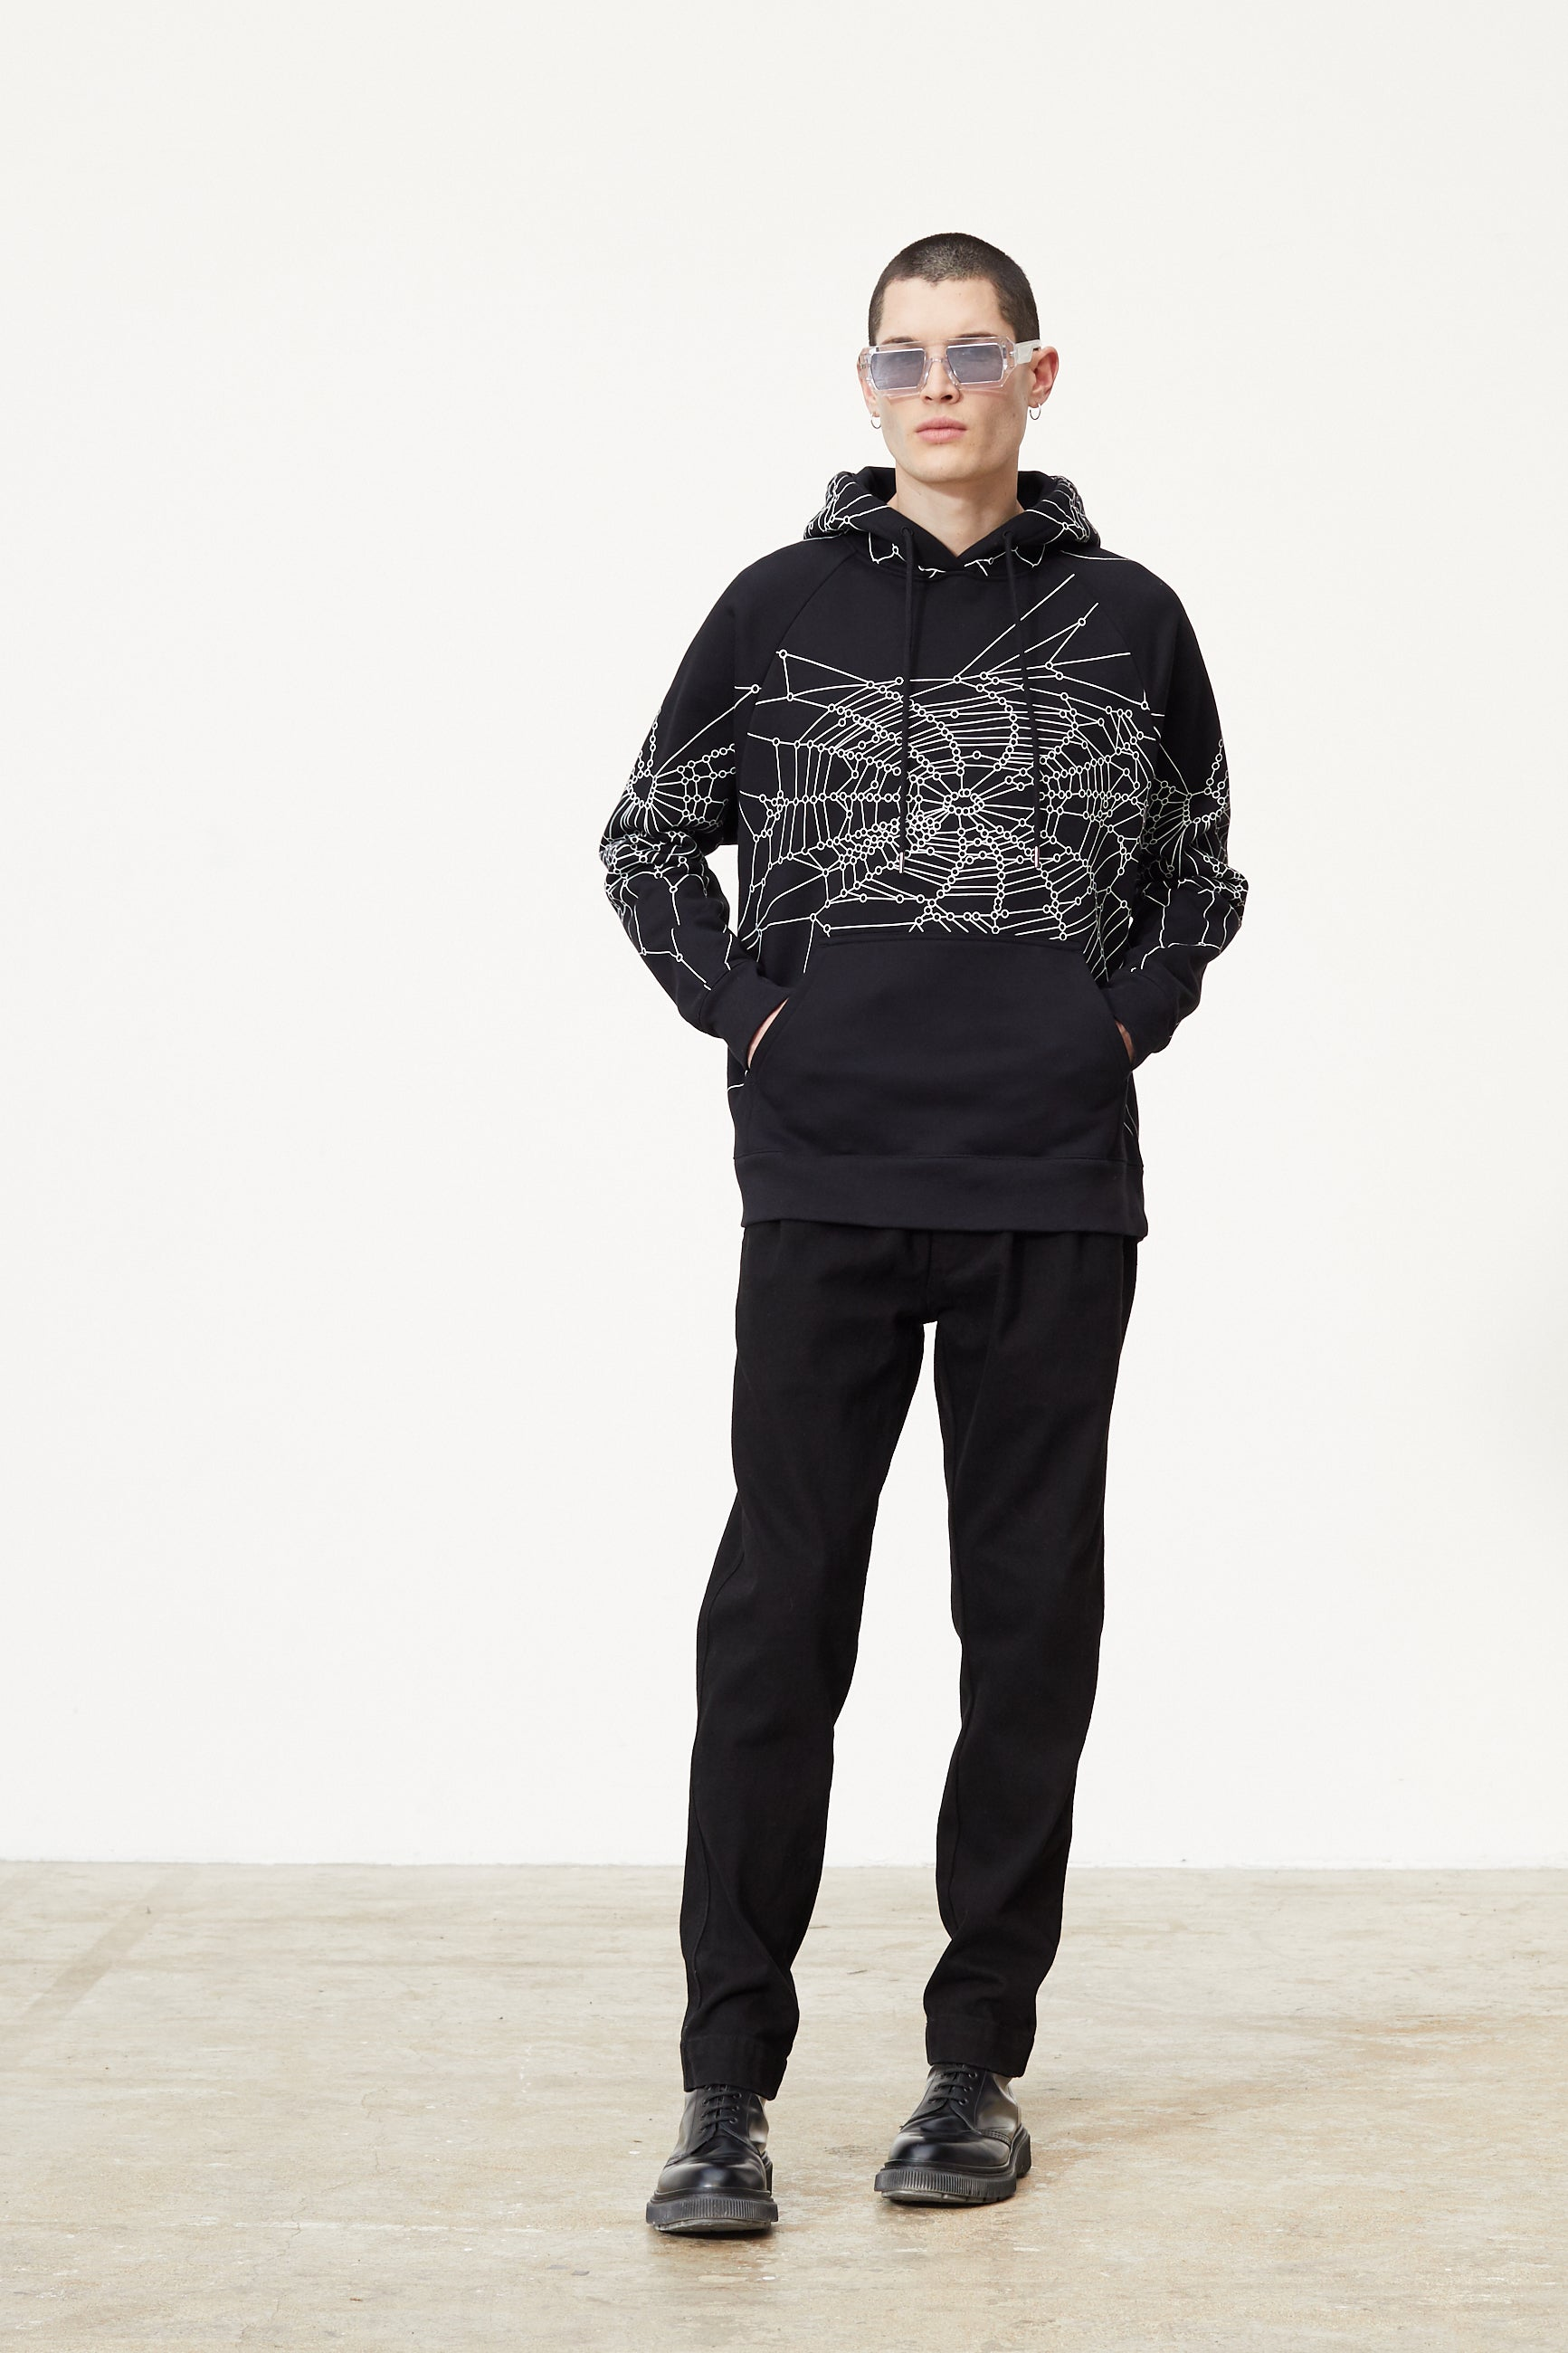 Études Racing Hood Spider Web Black Sweatshirt 3